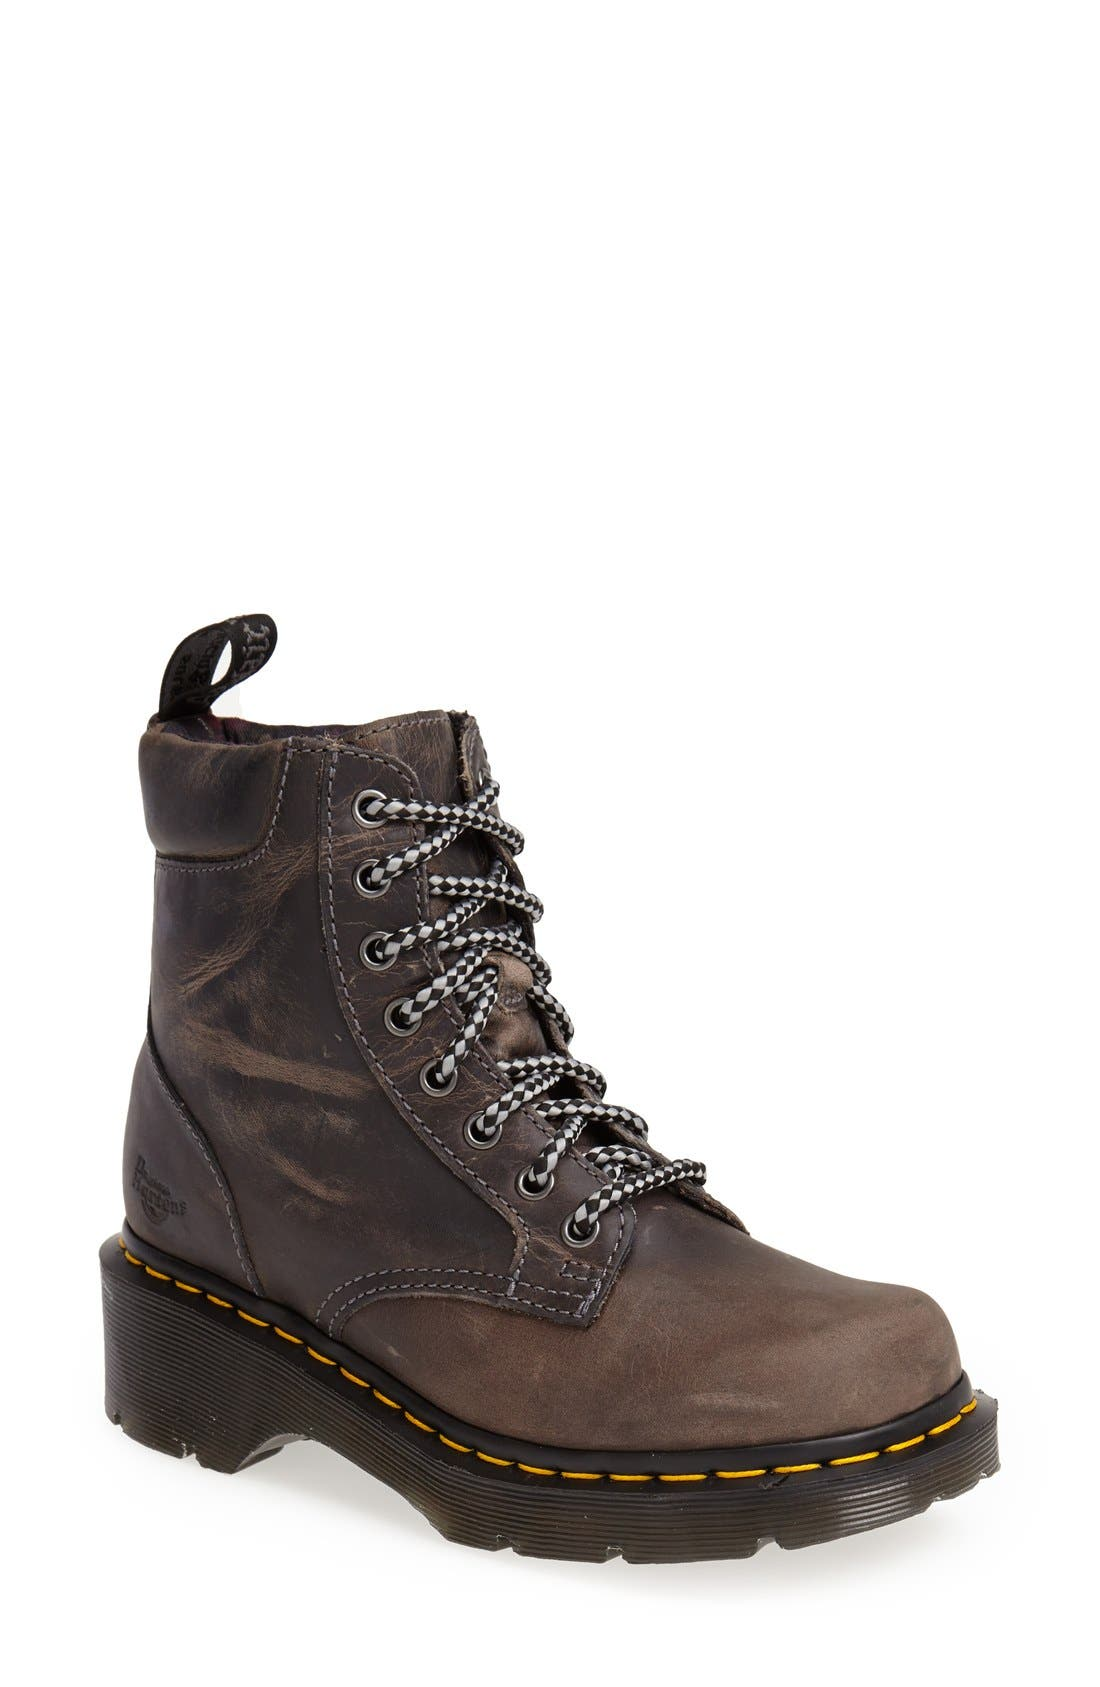 Alternate Image 1 Selected - Dr. Martens 'Dharma' Leather Boot (Women)